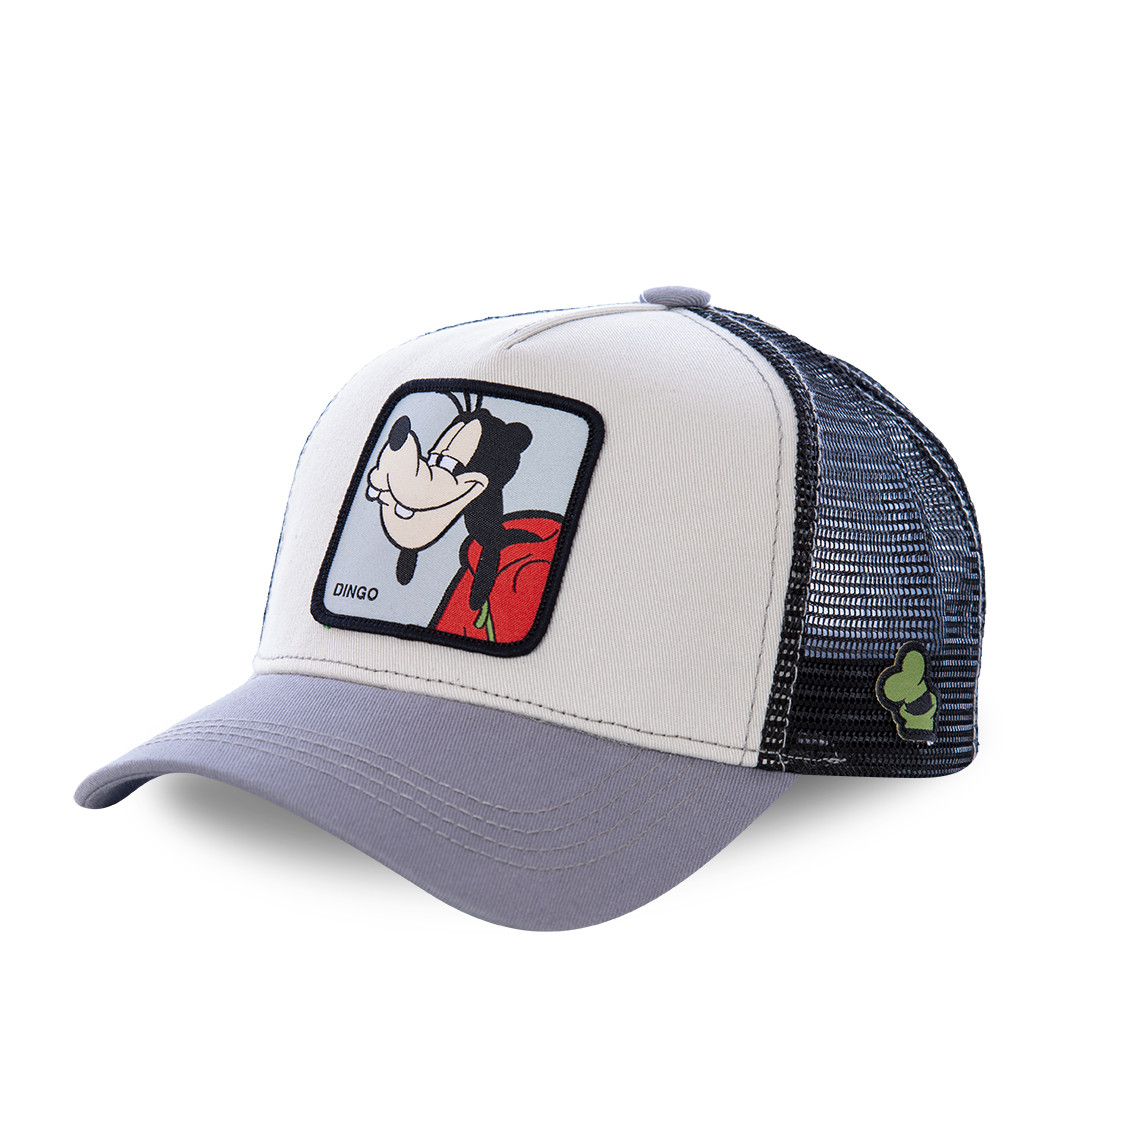 Casquette capslab disney dingo gris (photo)